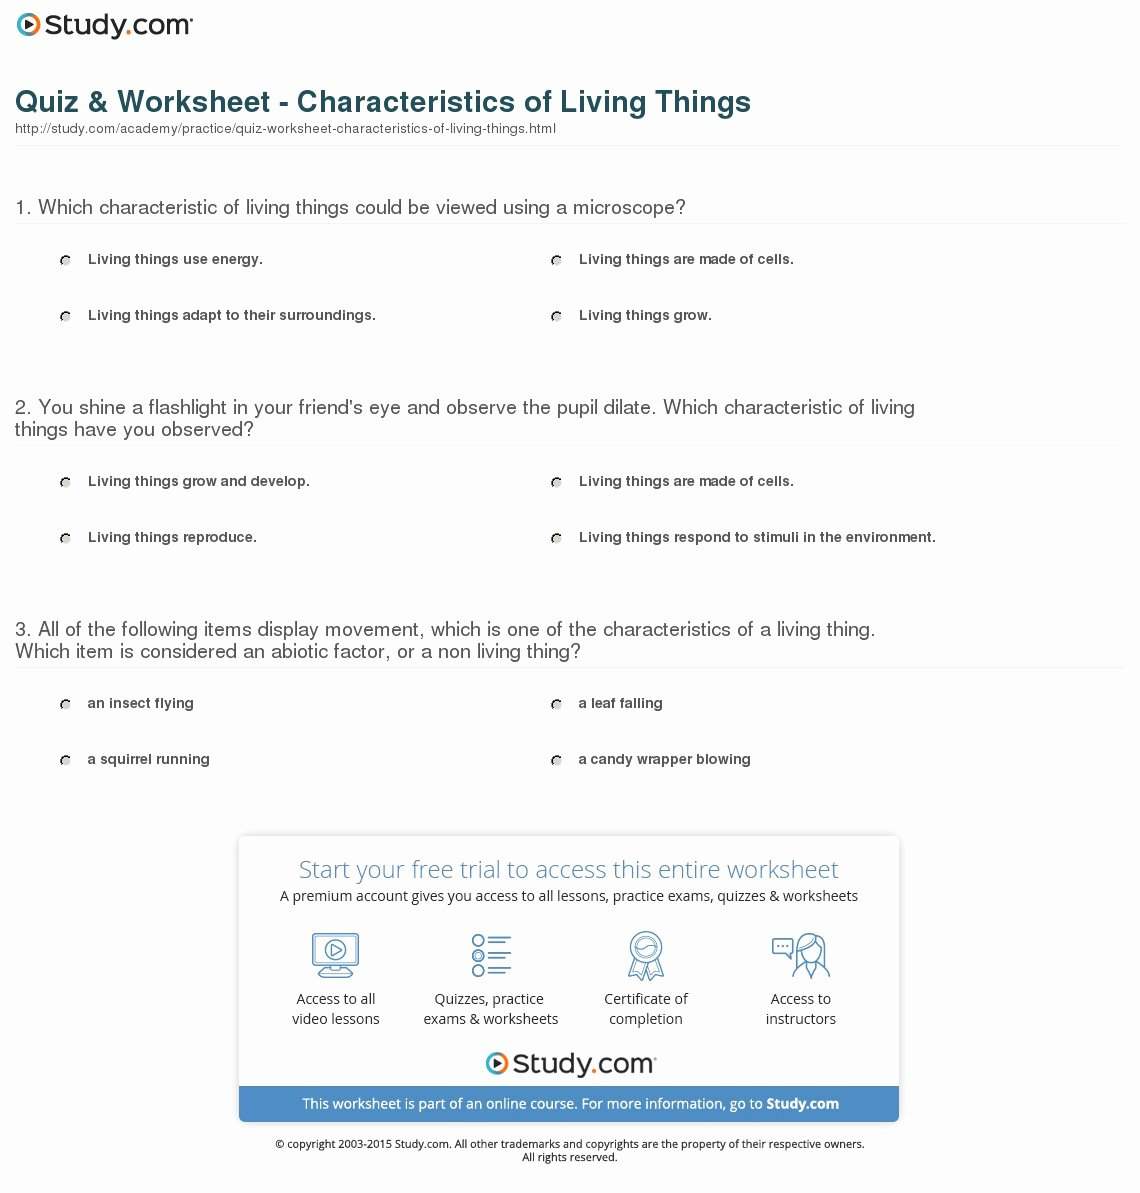 Characteristics Of Life Worksheet Answers Fresh Quiz & Worksheet Characteristics Of Living Things